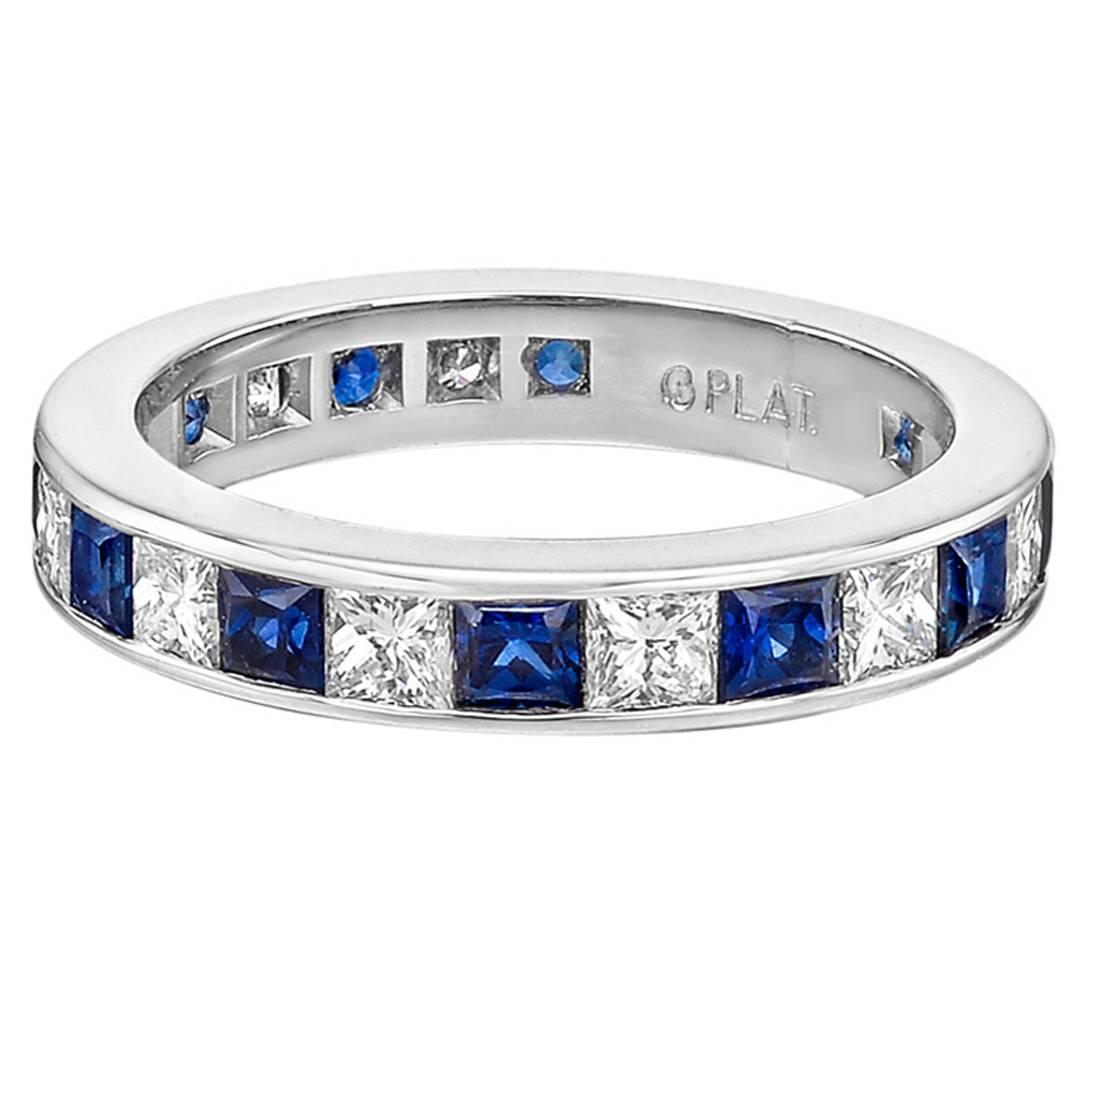 stone shared blue in diamond set band yellow gold anniversary bands with yg jewelry wedding white nl sapphire round prong